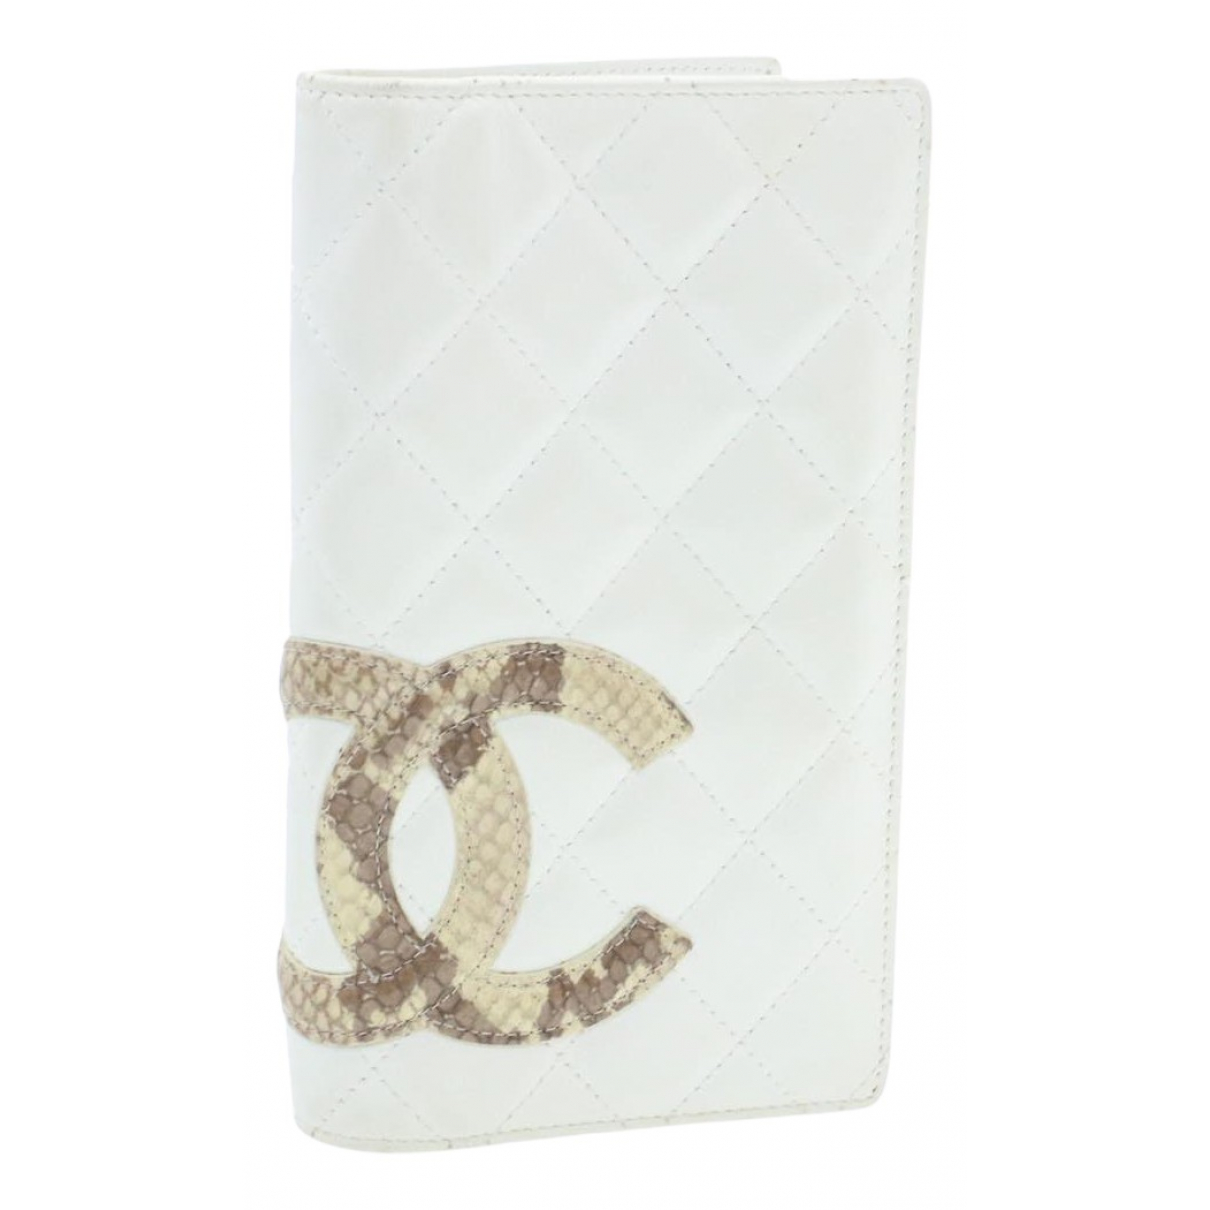 Chanel Cambon White Leather wallet for Women N